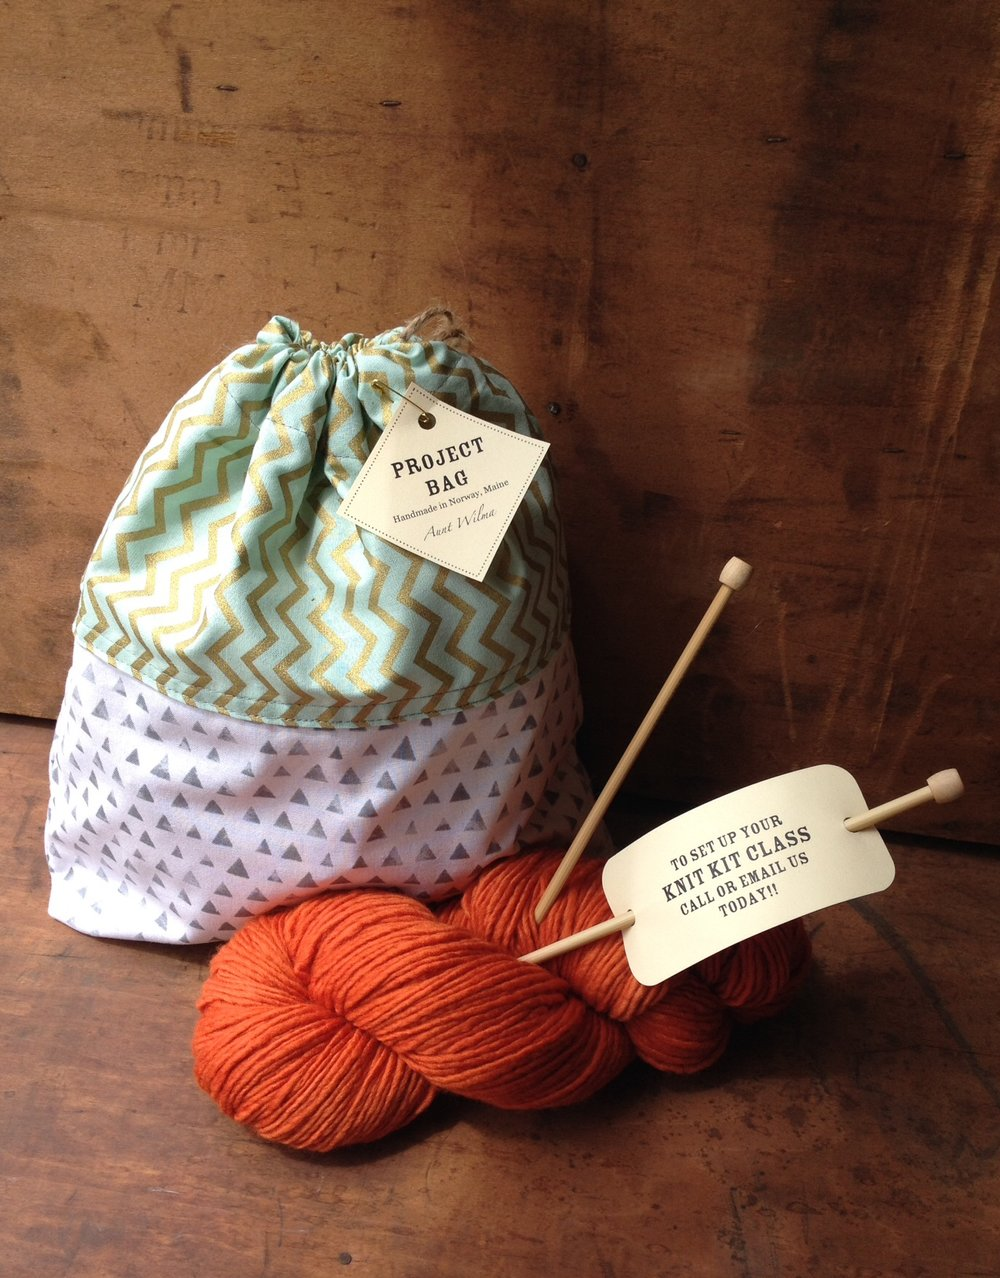 Our Learn to knit kit comes with all that you need to become a knitter, including a free two hour knitting lesson!